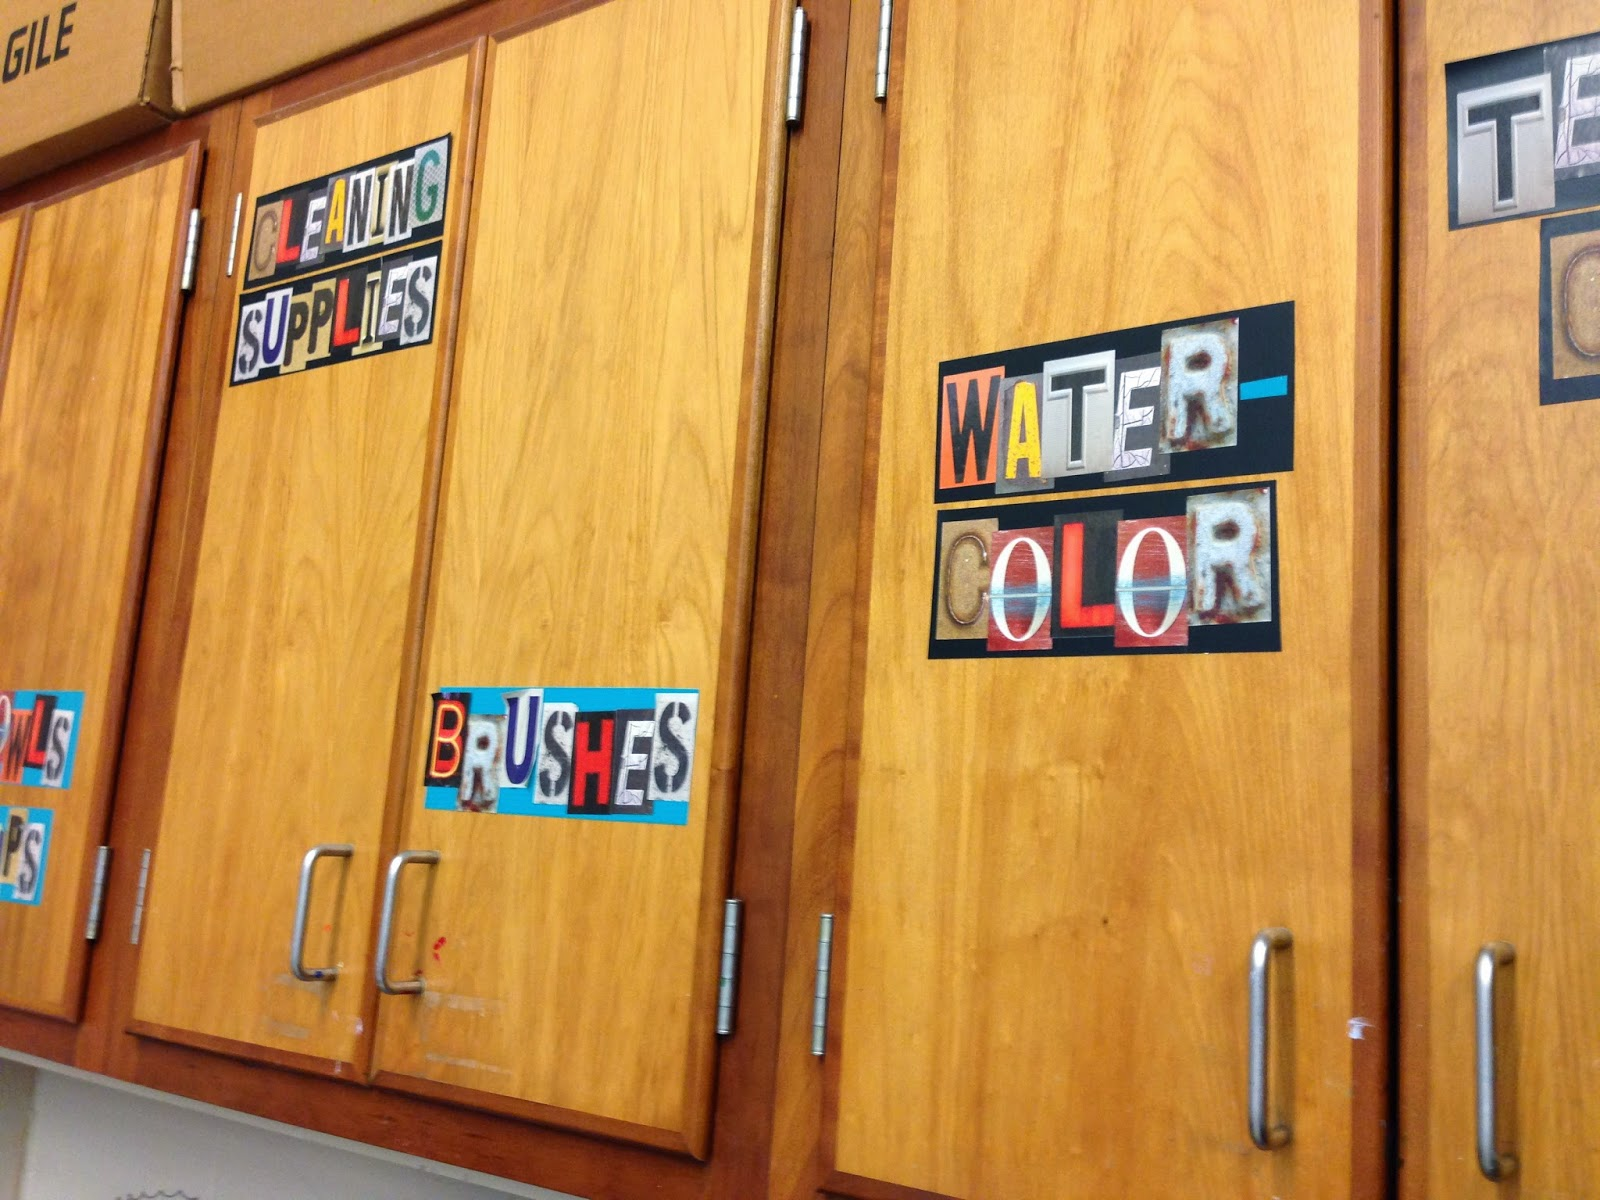 Use letter stickers for labeling cabinets.